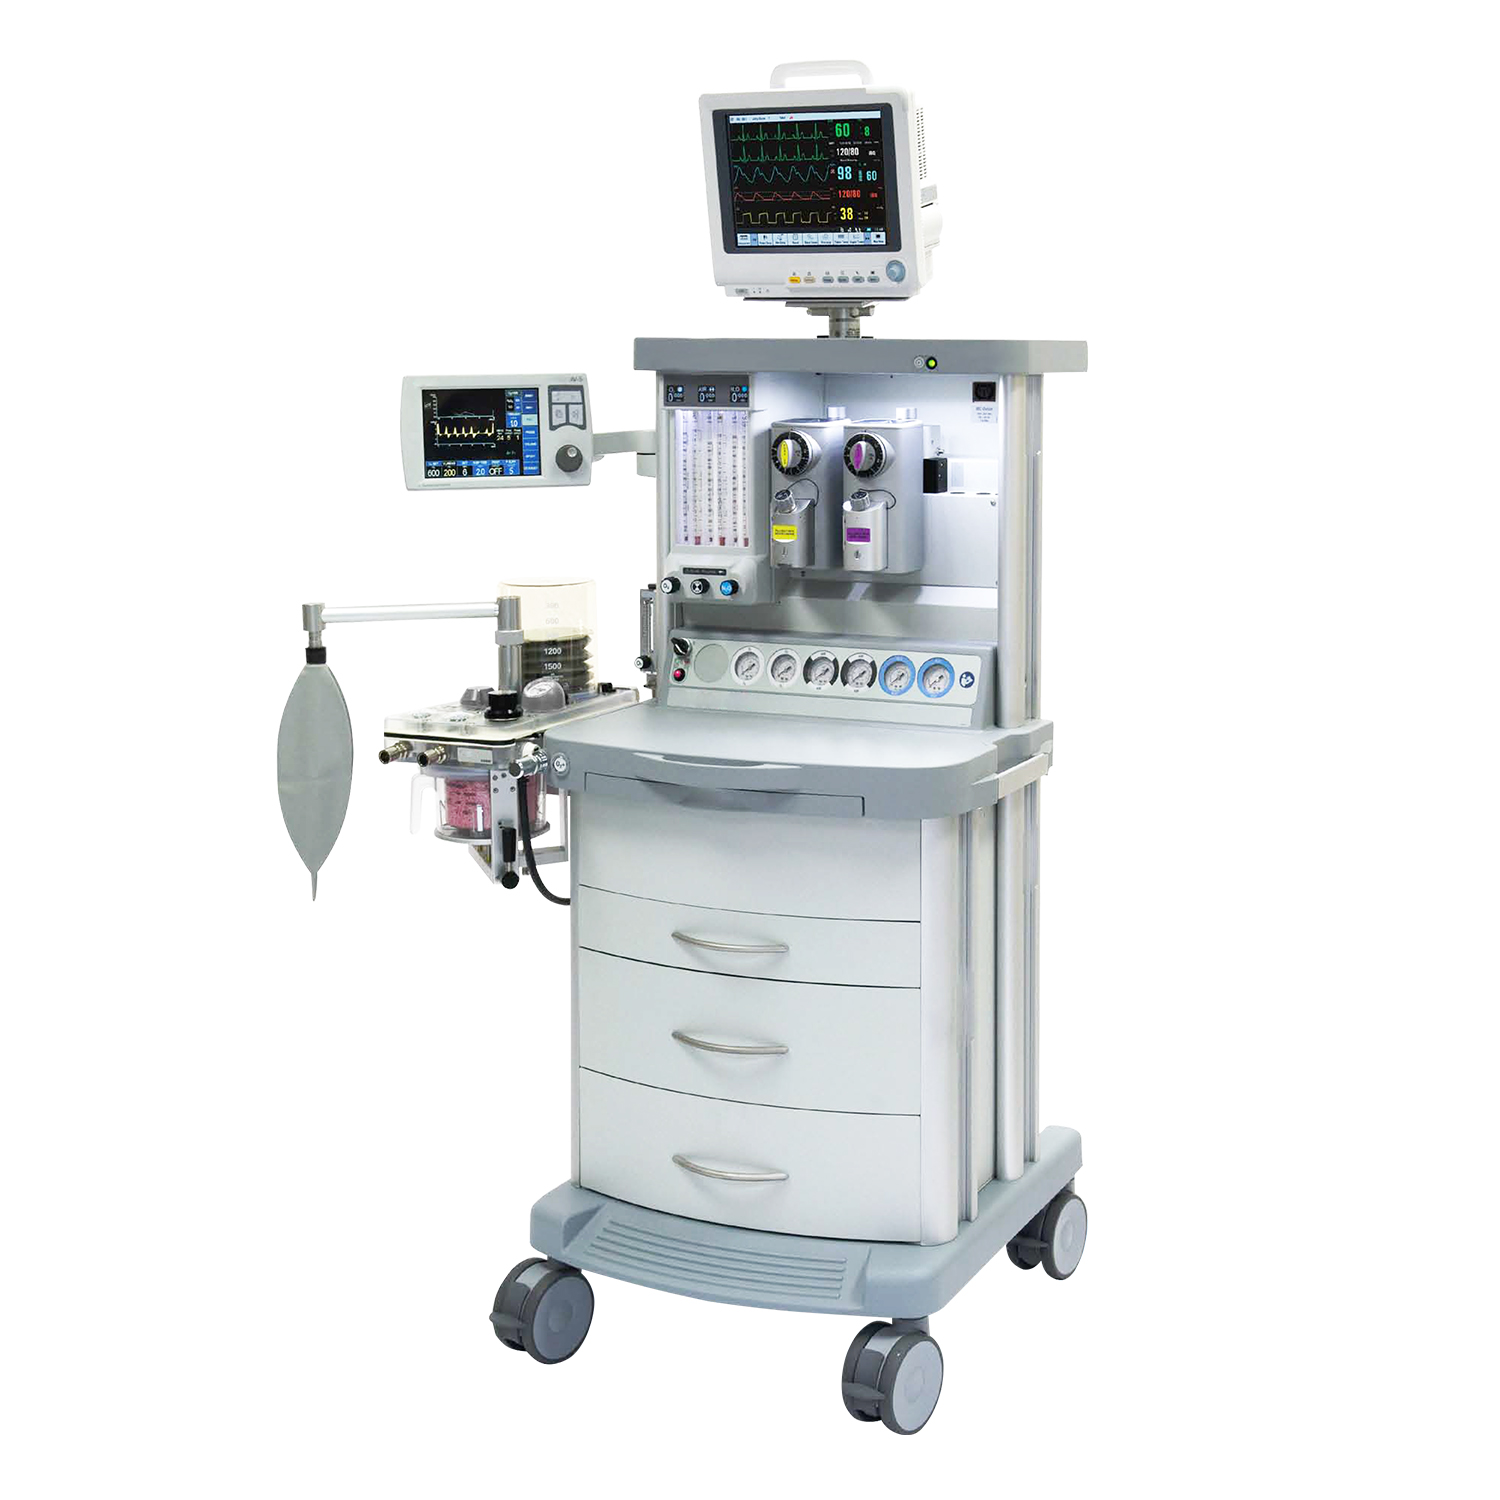 Avante Integra SL3 Anesthesia Machine